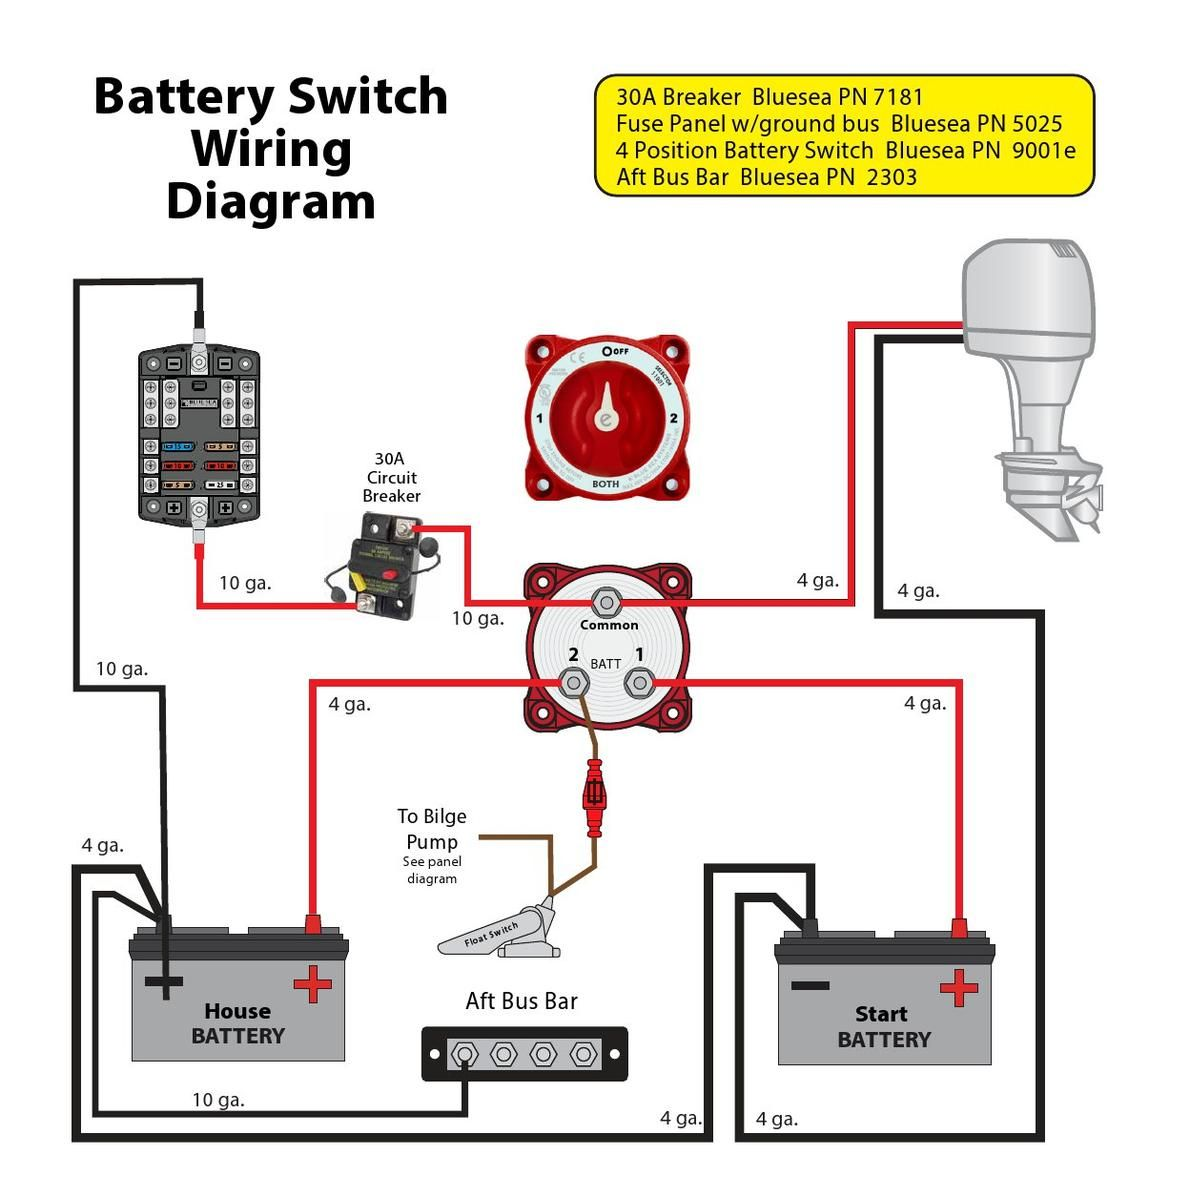 Perko Dual Switch Wiring Diagram Strat 5 Way Super Pin By Rick Herrick On Fresh Water Boating | Boat Wiring, Boat, Pontoon